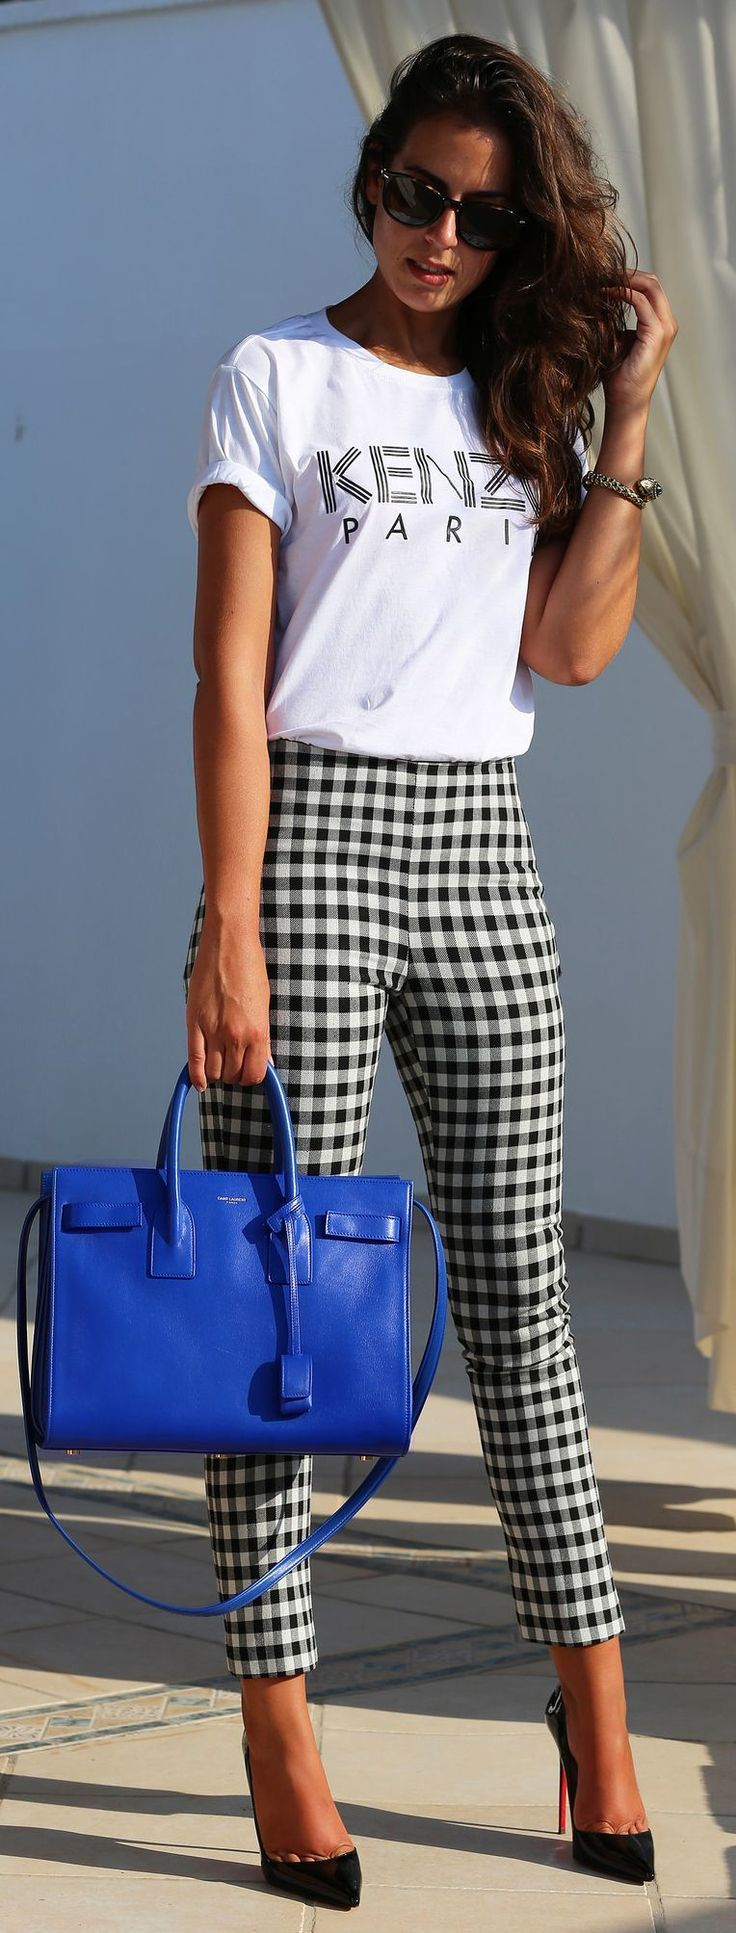 Rock a white and black print crew-neck t-shirt with black and white gingham fitted pants to effortlessly deal with whatever this day throws at you. Why not introduce black leather pumps to the mix for an added touch of style?   Shop this look on Lookastic: https://lookastic.com/women/looks/crew-neck-t-shirt-skinny-pants-pumps-tote-bag-sunglasses-bracelet/13452   — Black Sunglasses  — Gold Bracelet  — White and Black Print Crew-neck T-shirt  — Black and White Gingham Skinny Pants  — Blue…